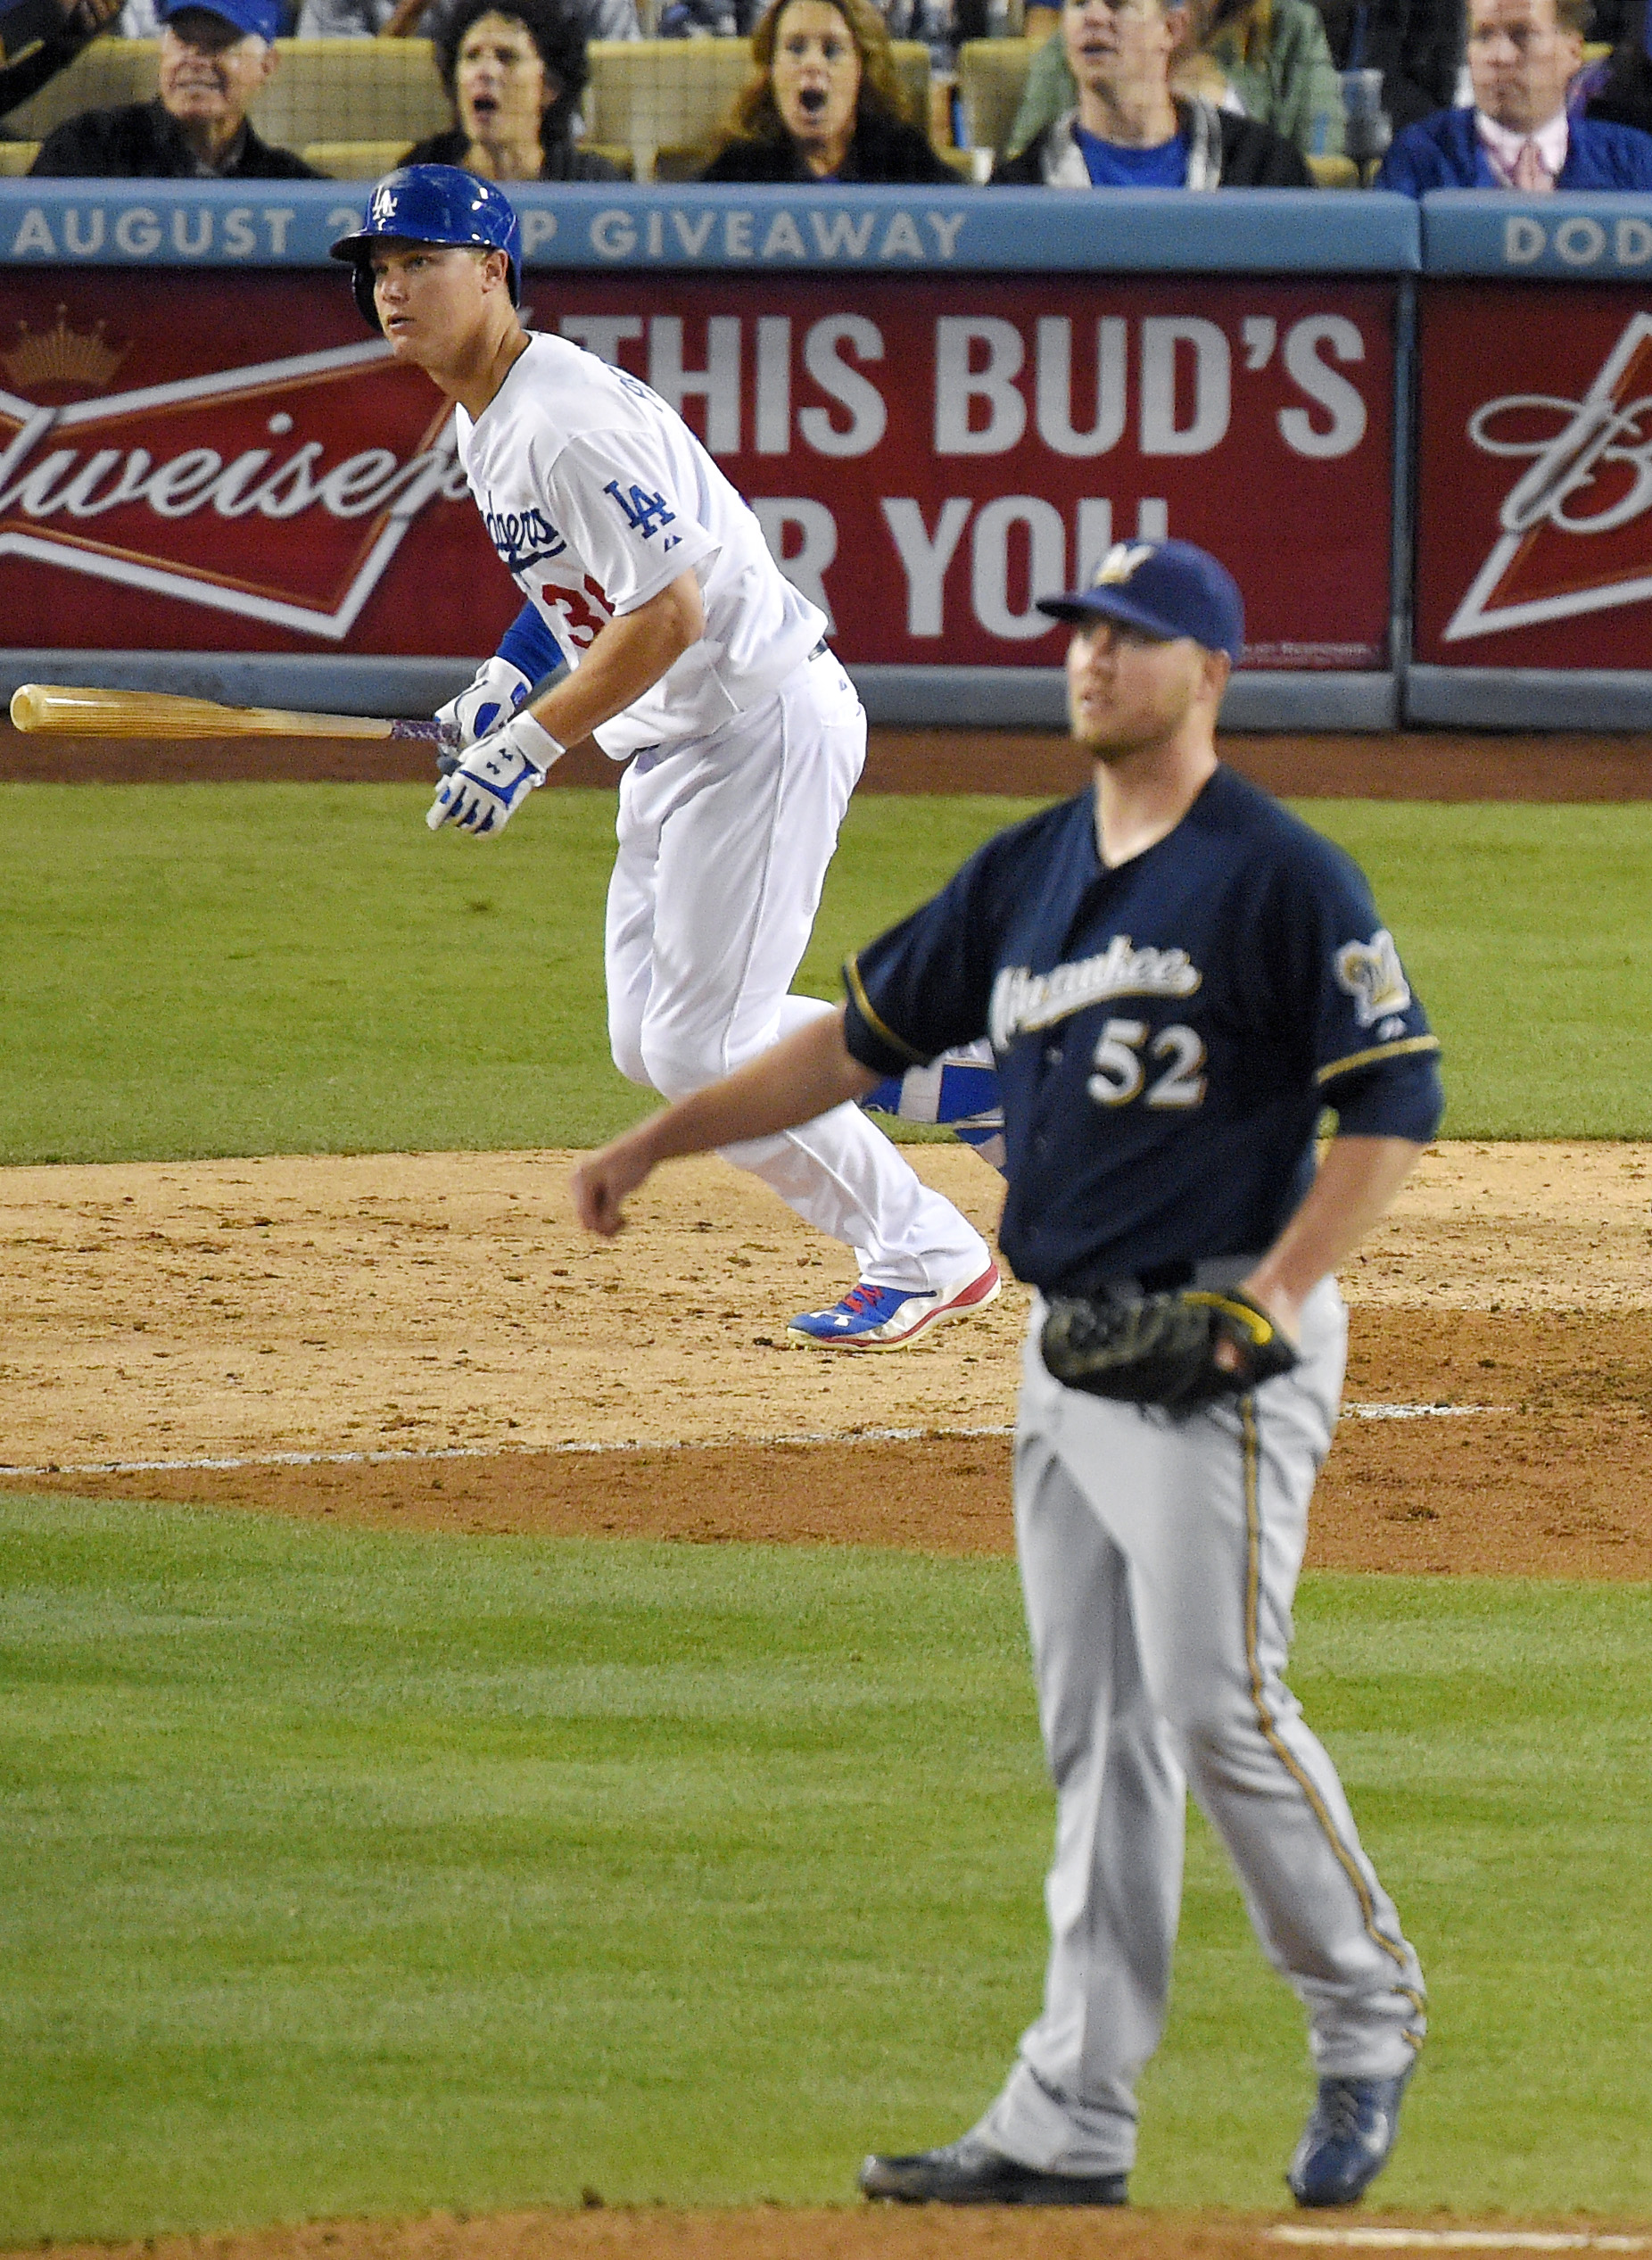 Los Angeles Dodgers' Joc Pederson runs to first on a single off Milwaukee Brewers starting pitcher Jimmy Nelson, foreground, during the sixth inning of a baseball game, Friday, July 10, 2015, in Los Angeles.  (AP Photo/Mark J. Terrill)